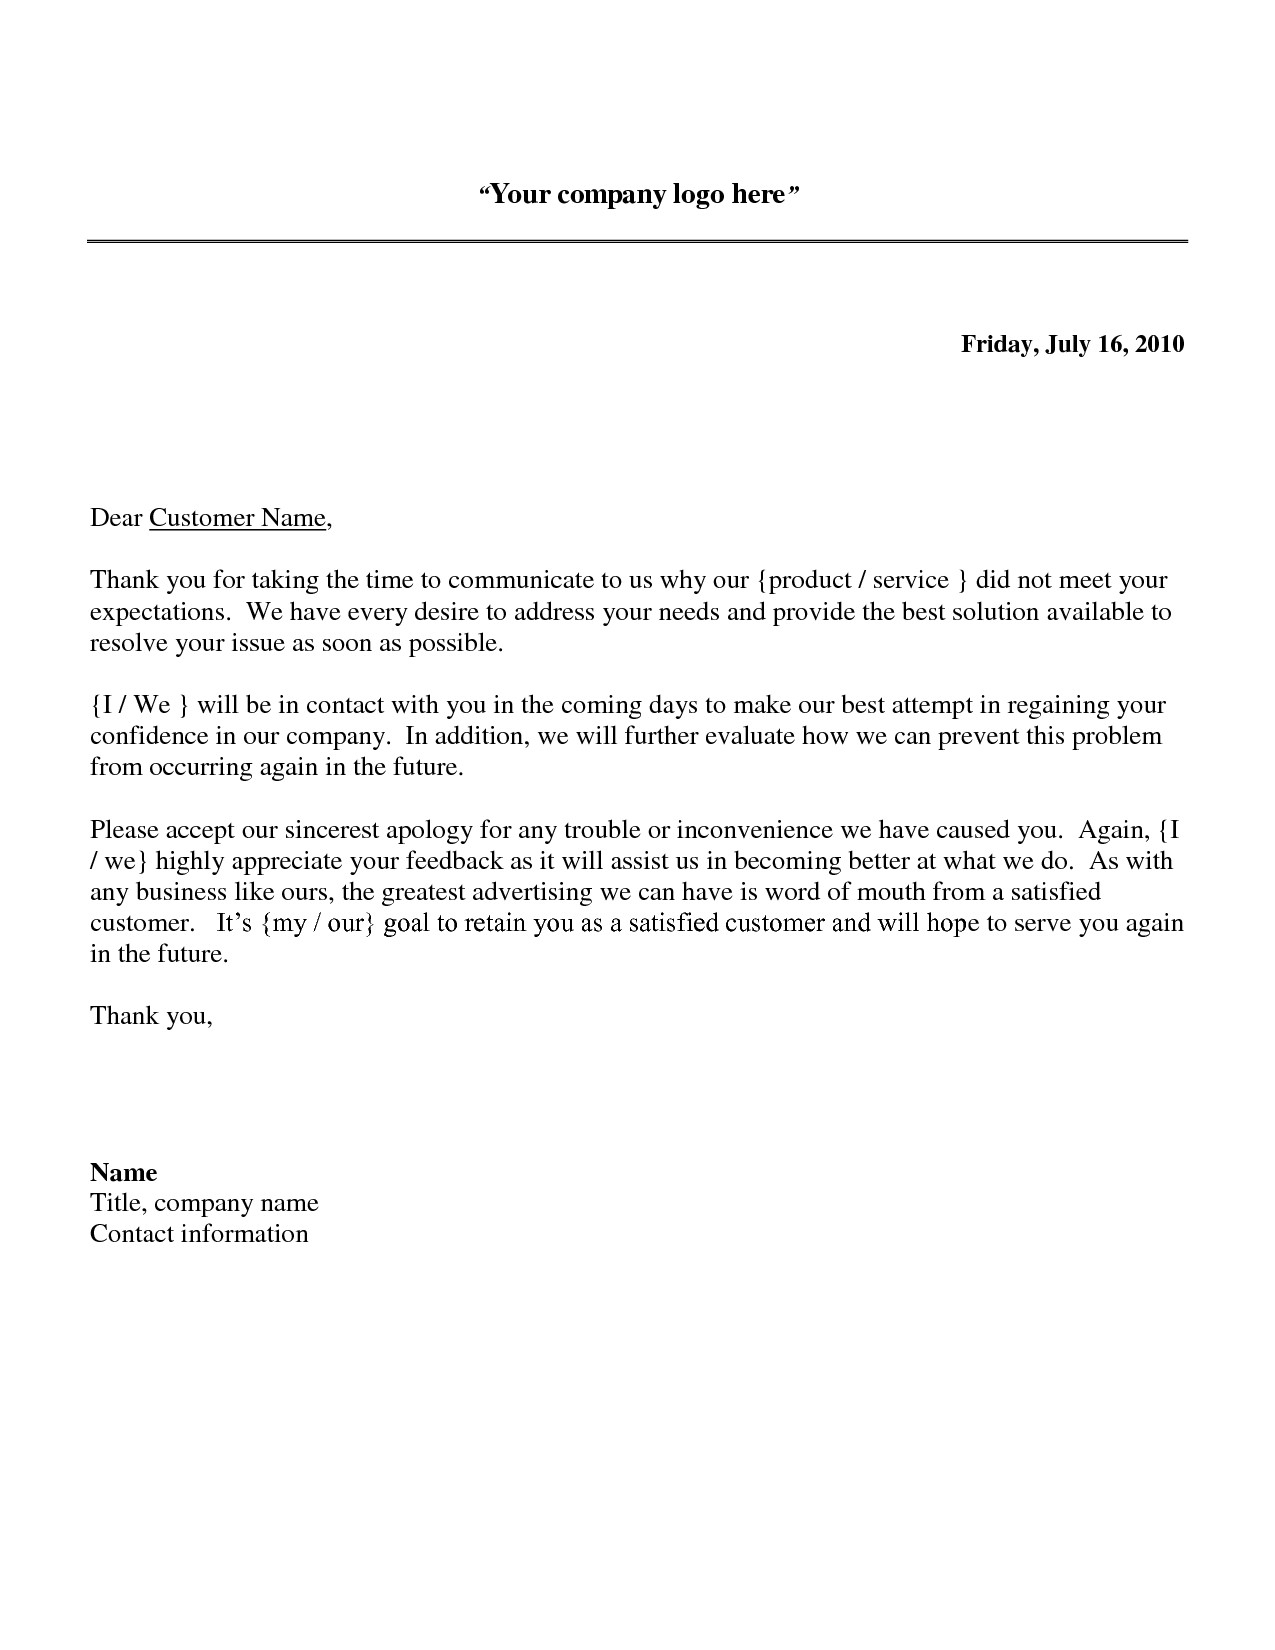 Reply to Patient Complaint Letter Template - Samples Response Letters to Customer Plaints Fresh Business